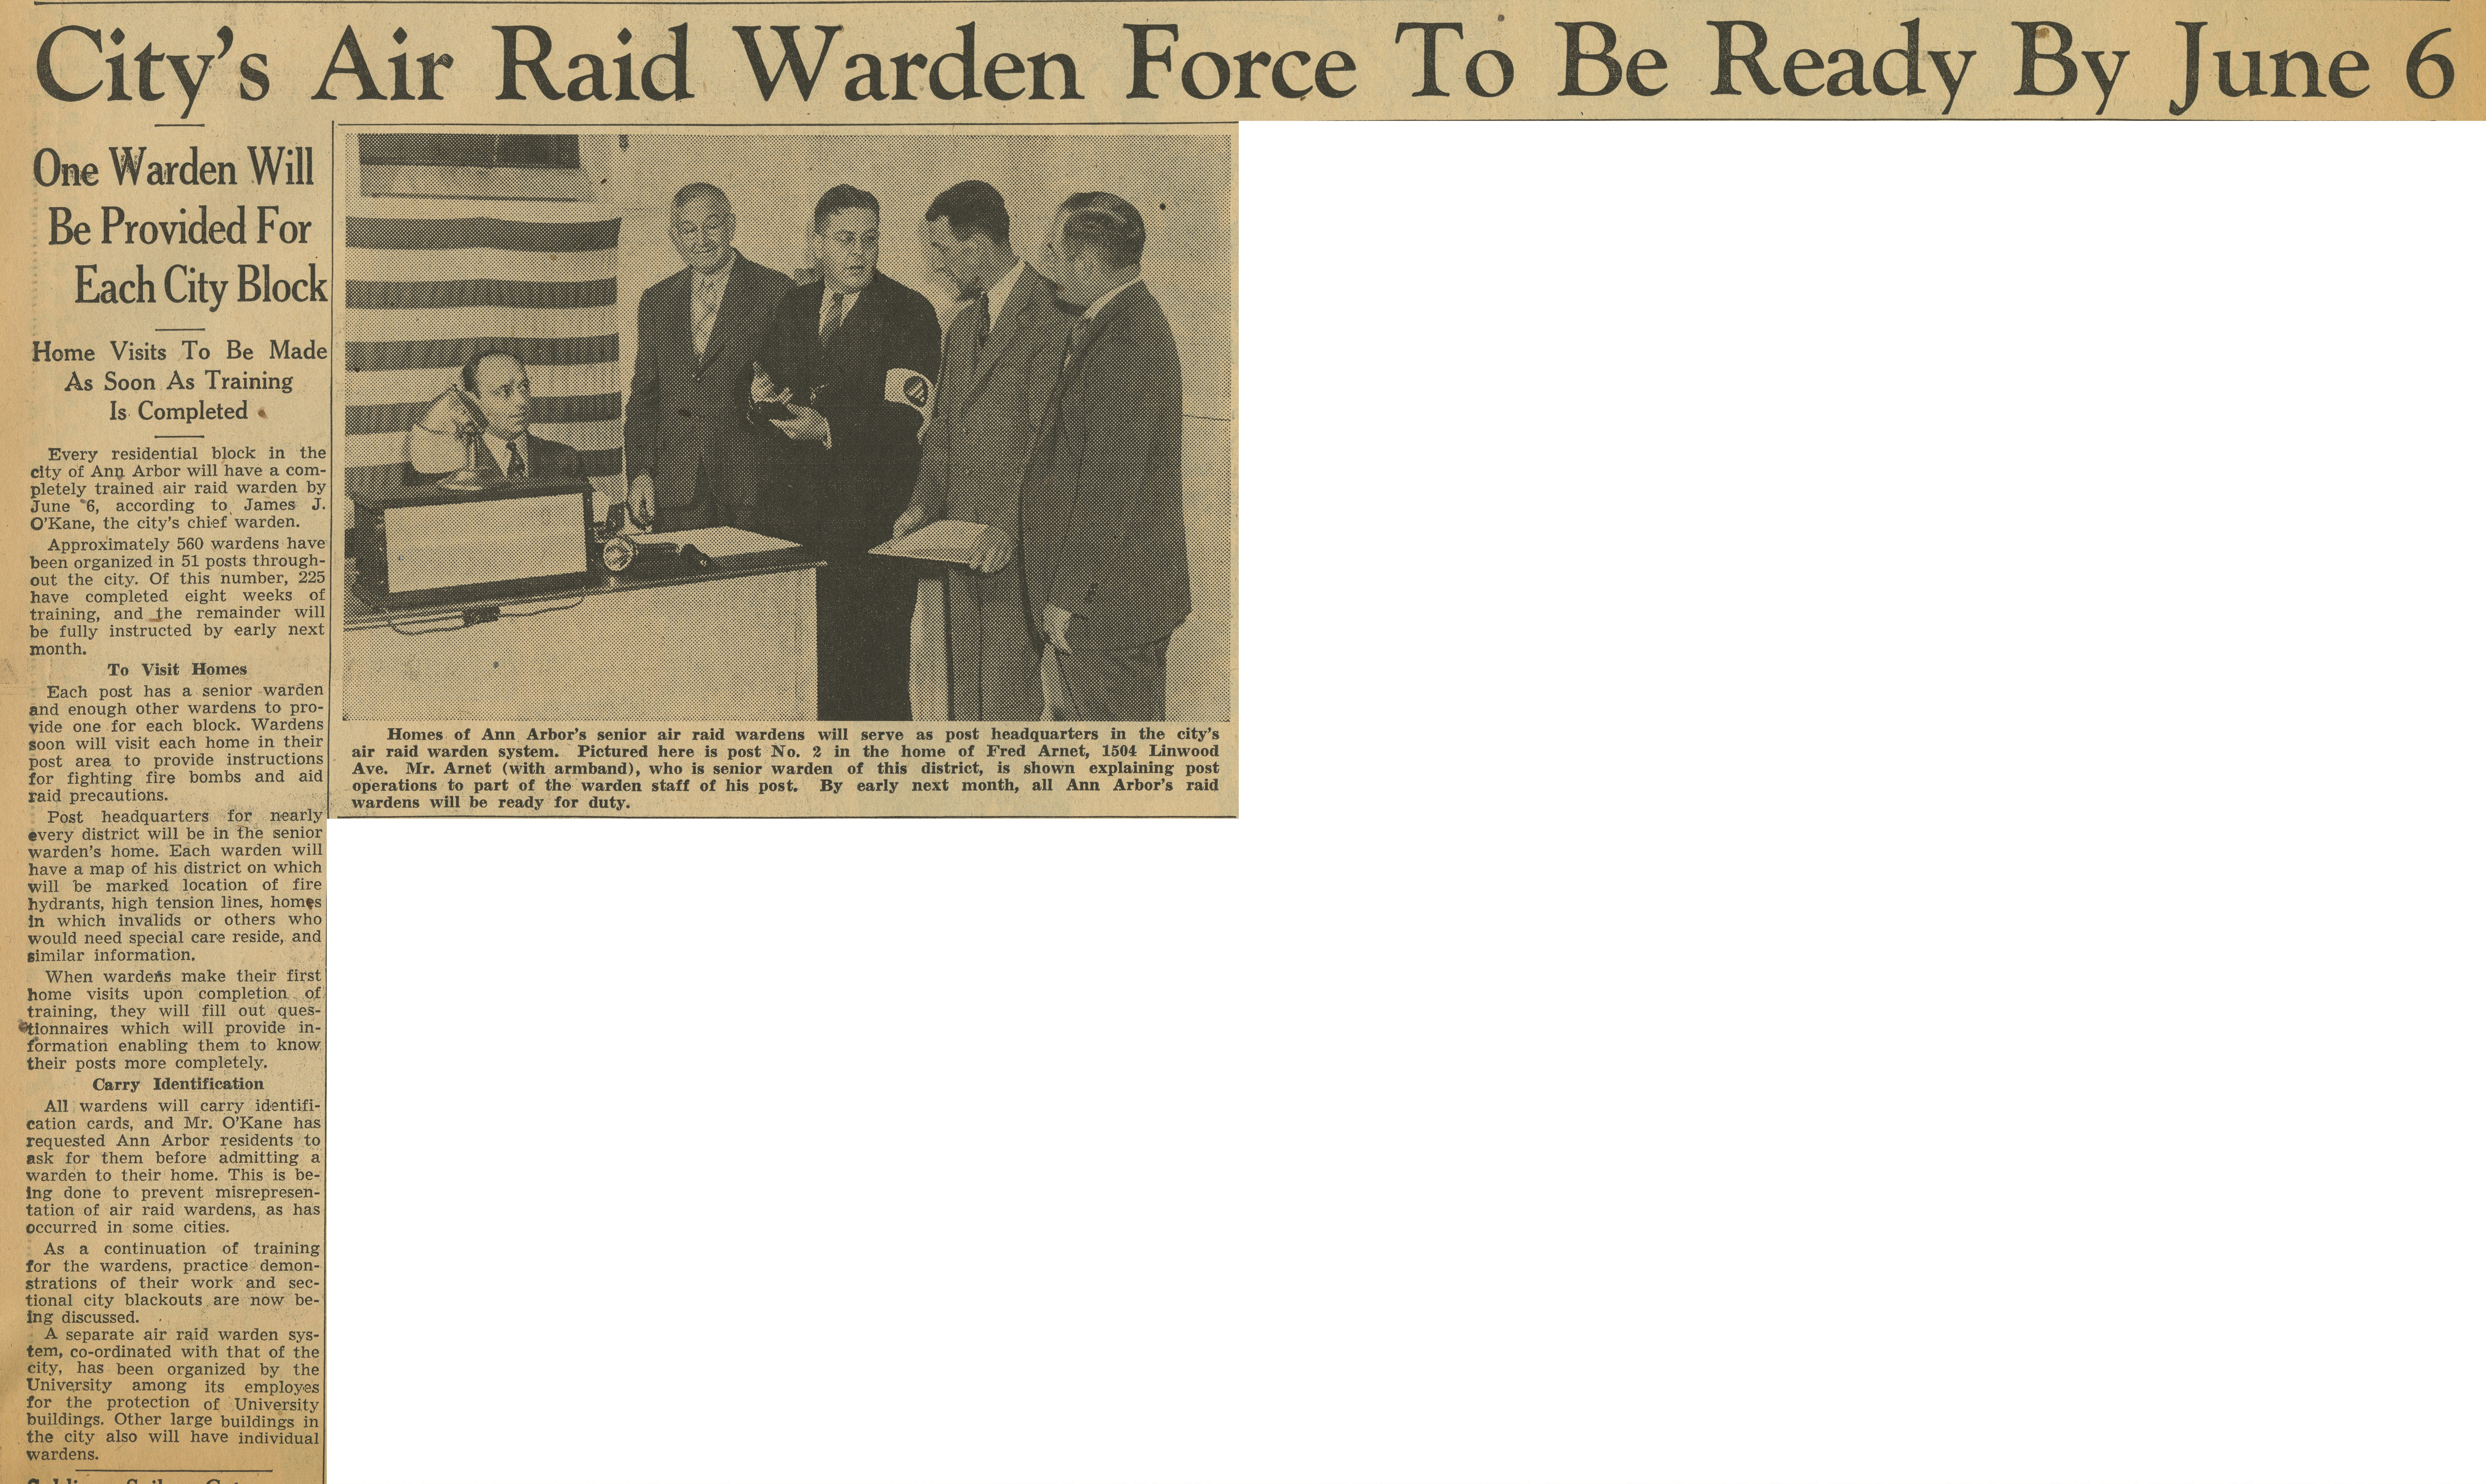 City's Air Raid Warden Force To Be Ready By June 6 image